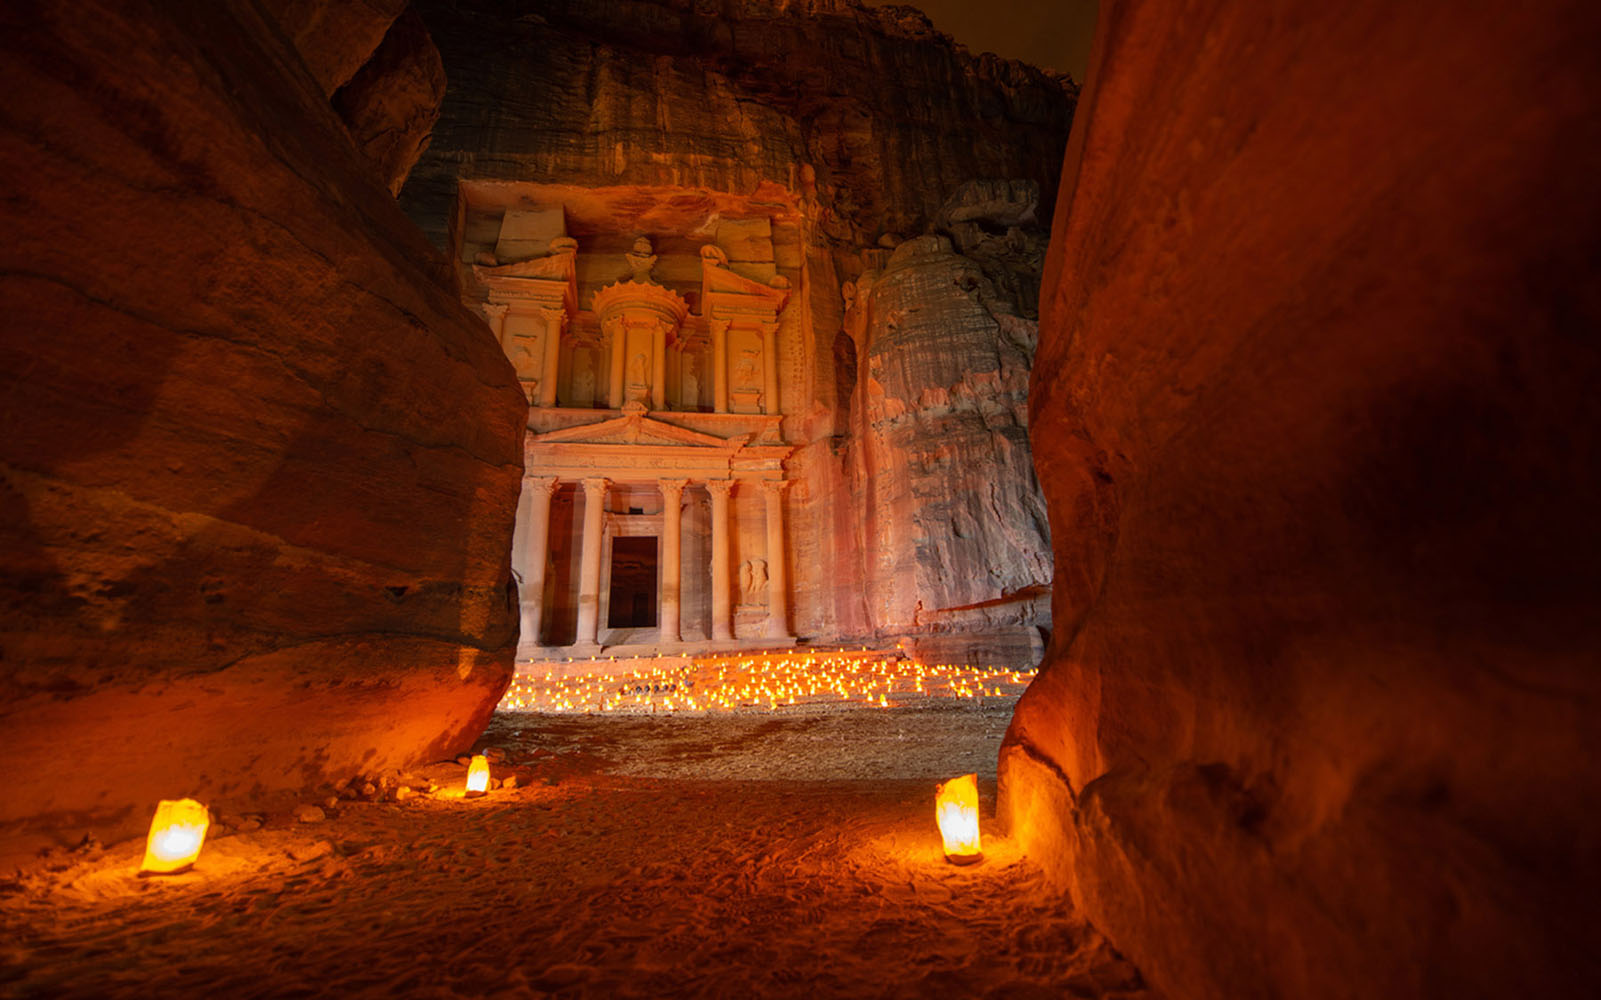 The ancient city of Petra lit by candles in the evening.